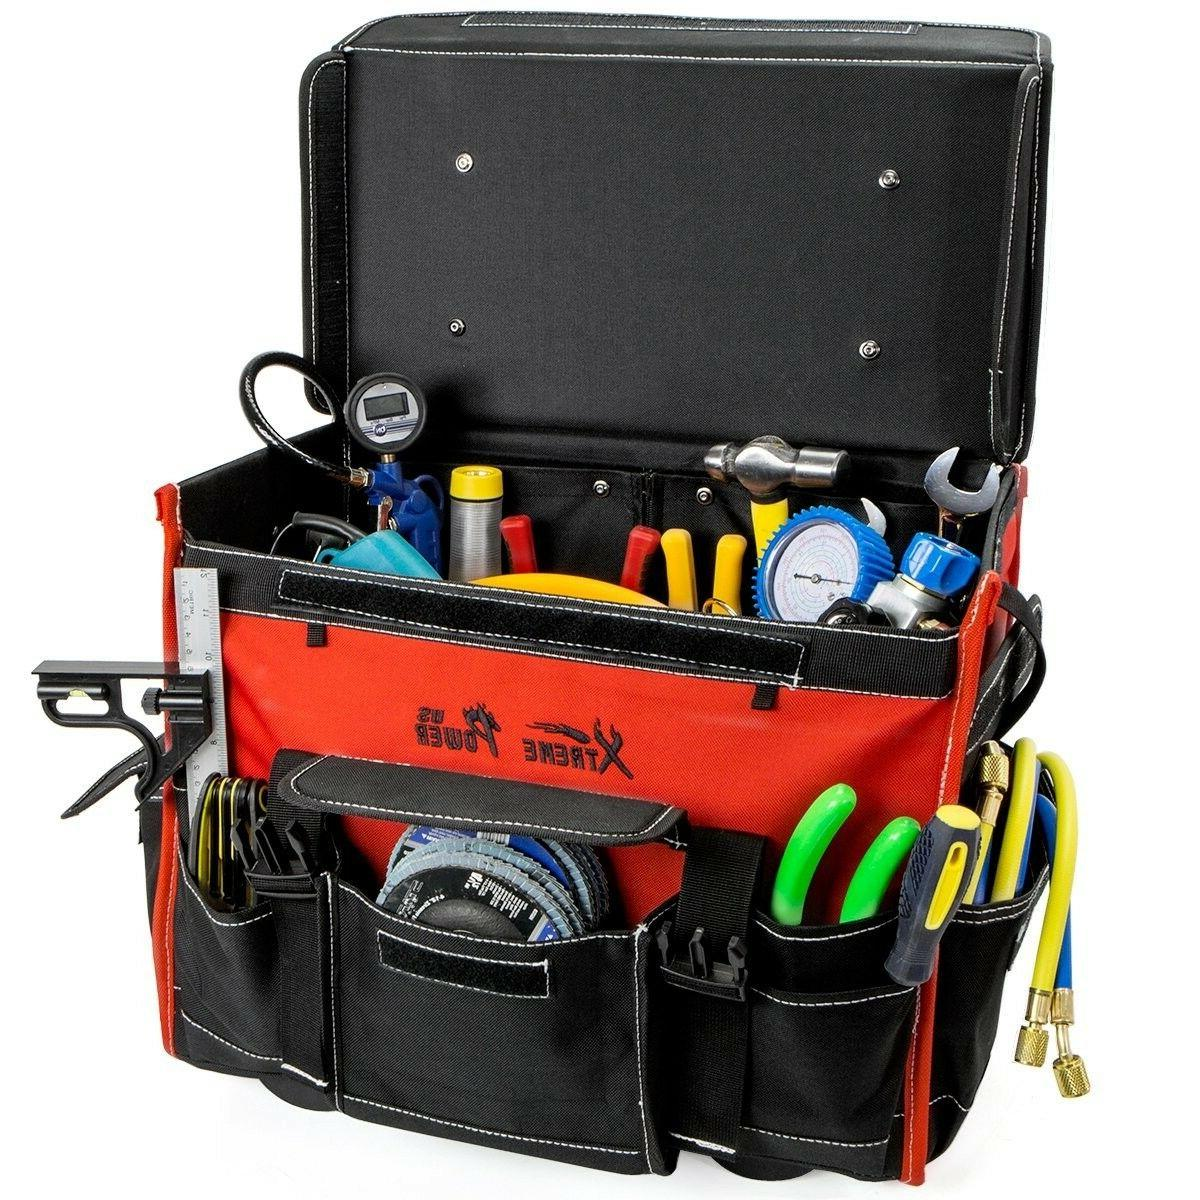 INCREDIBLE XtremepowerUS Tool Organizer, Black and